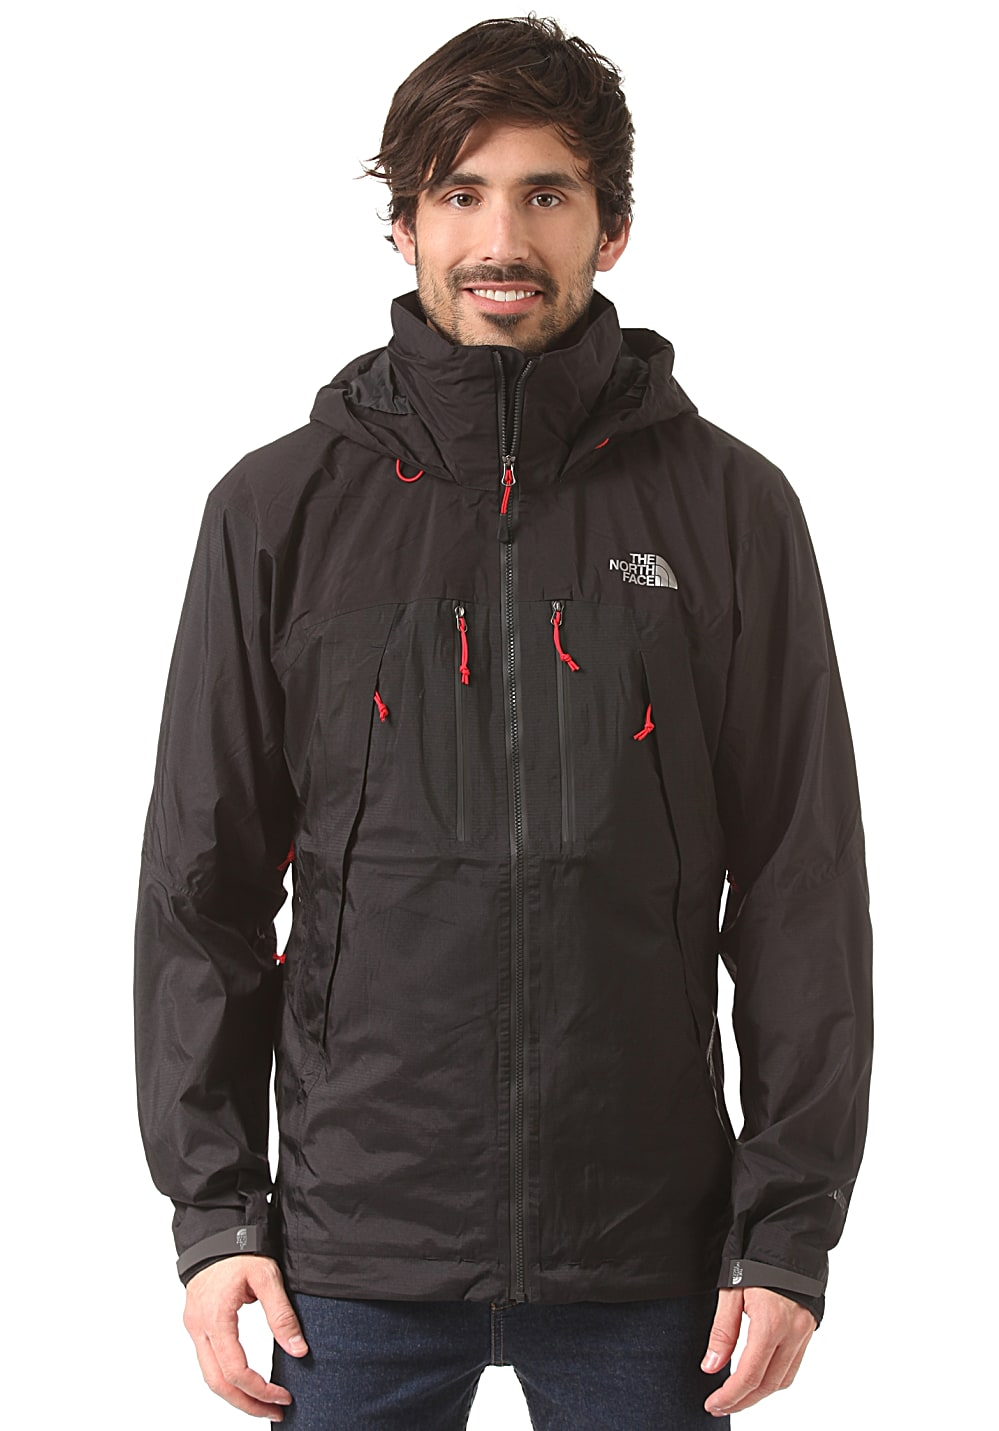 the north face peak guide funktionsjacke f r herren. Black Bedroom Furniture Sets. Home Design Ideas